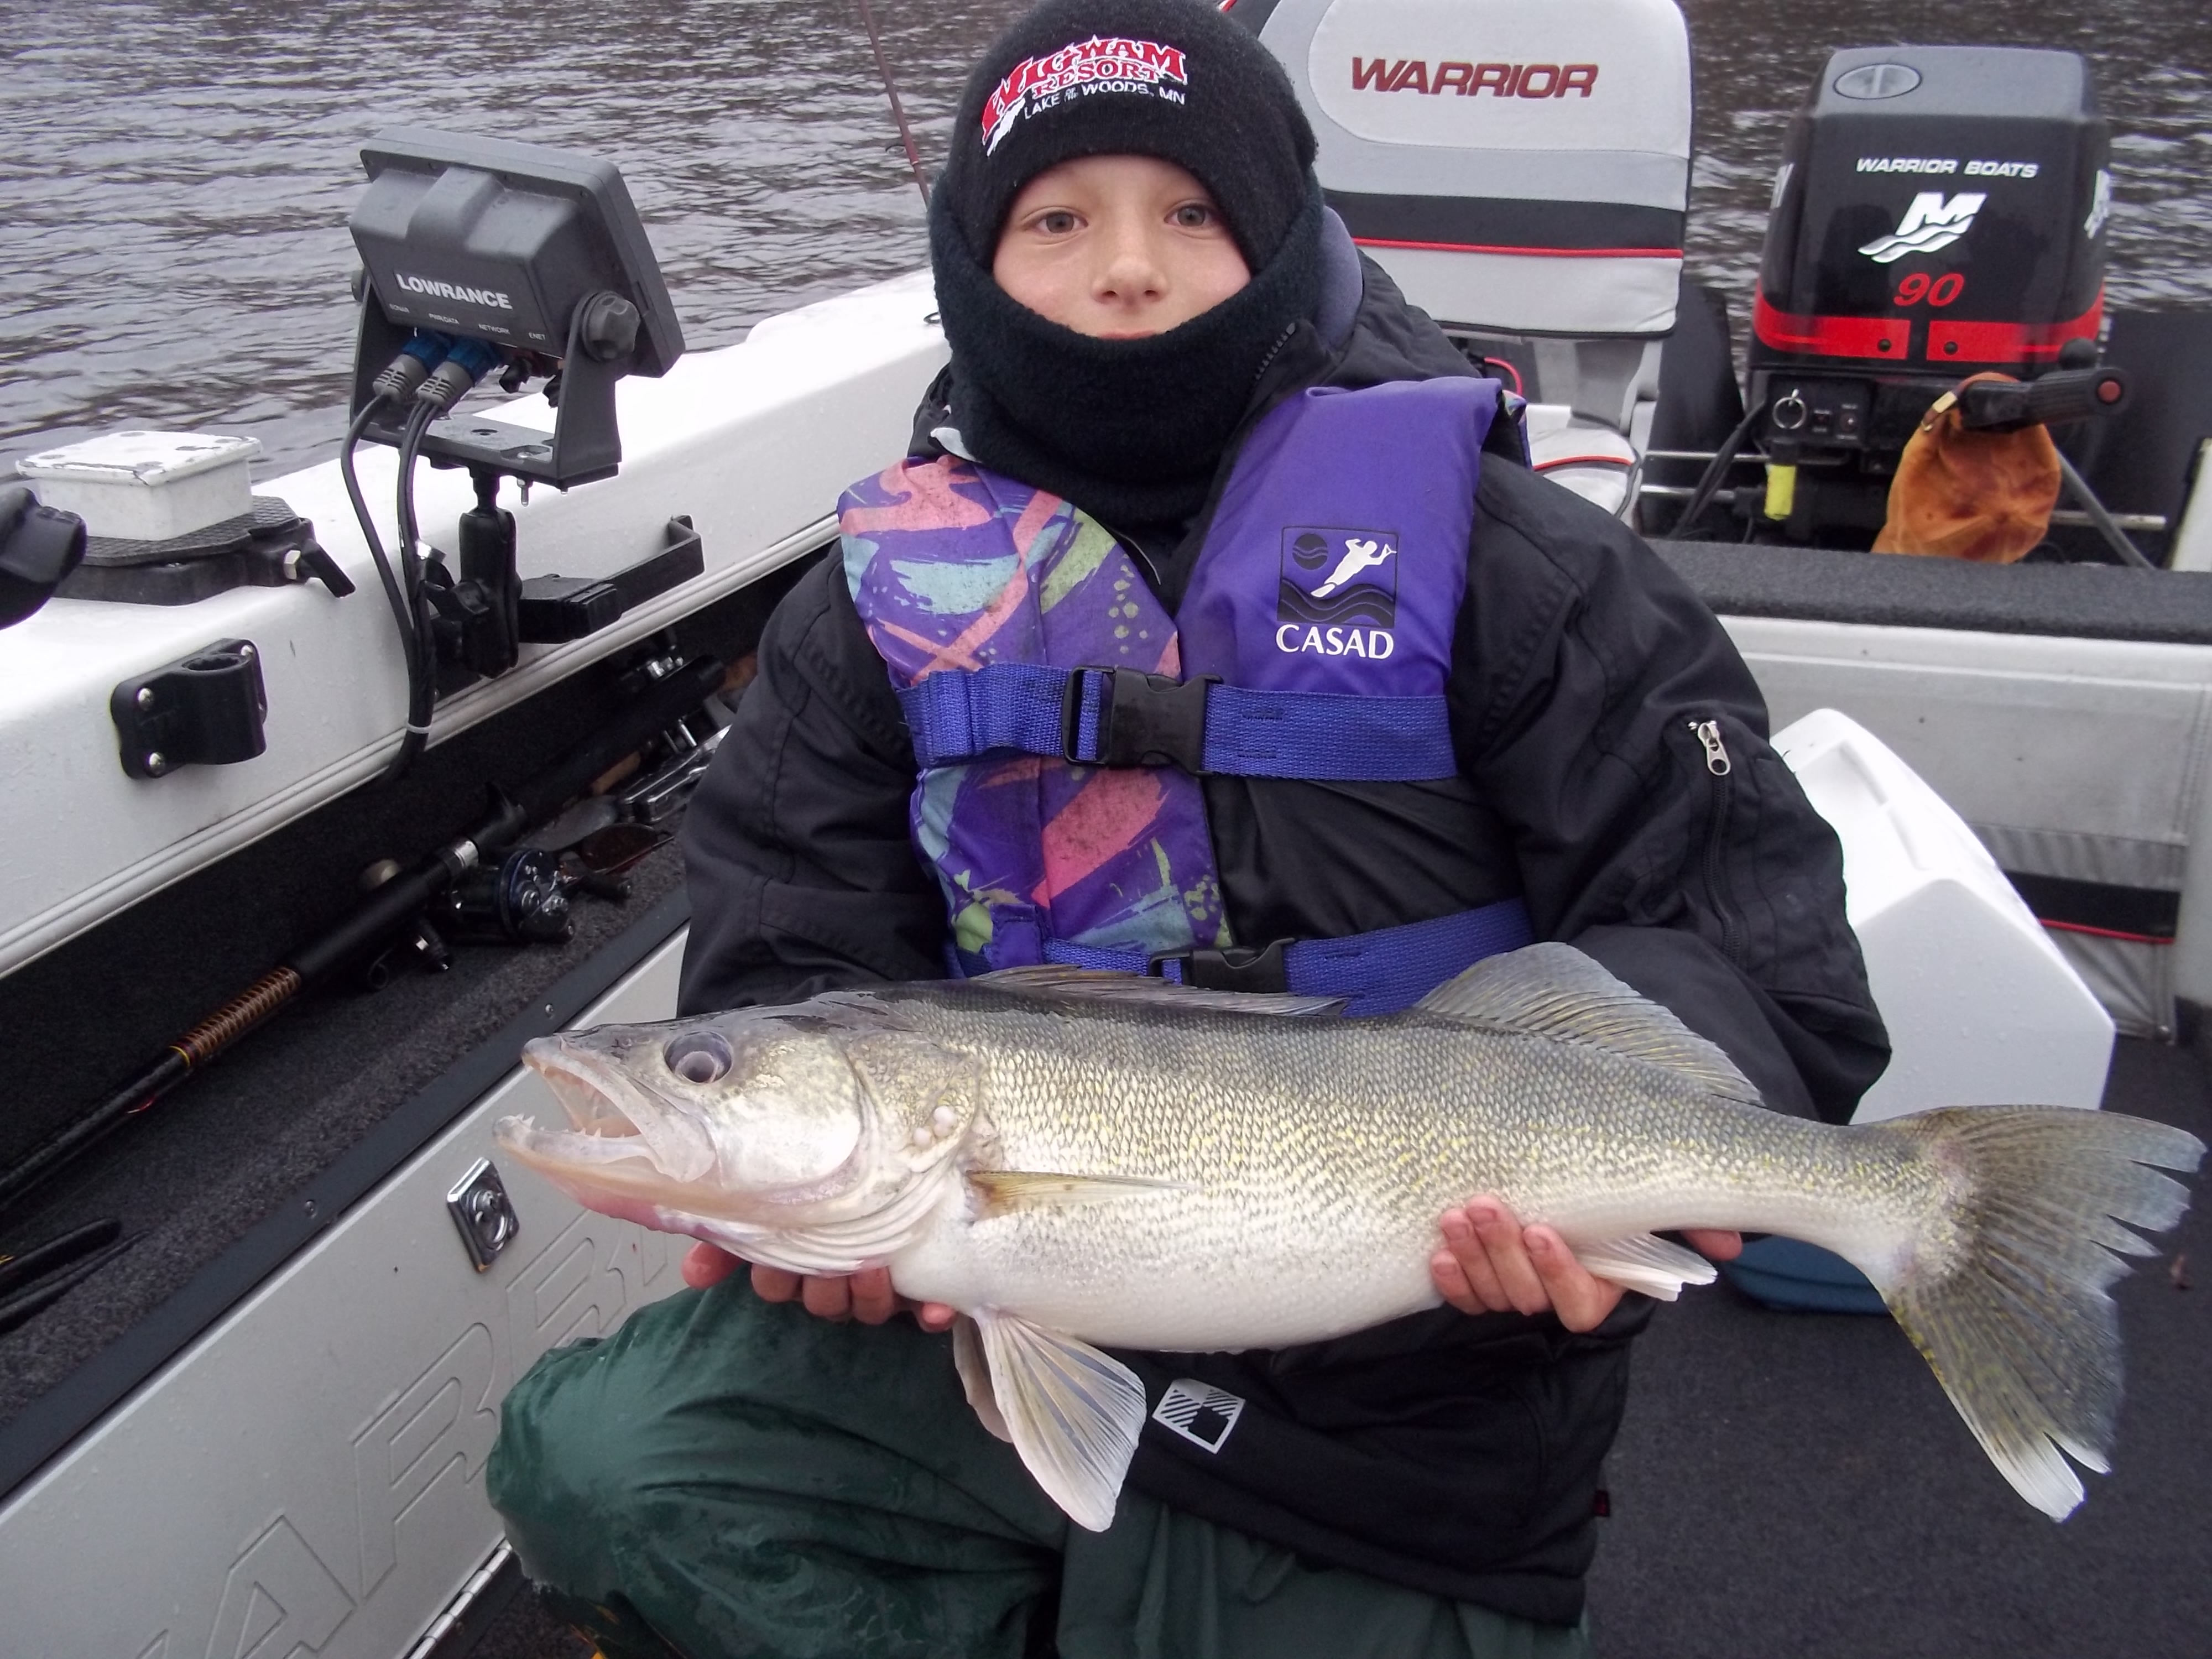 Griffin Blegen Baxter Minnesota    Species: Walleye Date Caught: 07/21/2012 Kept / Released: